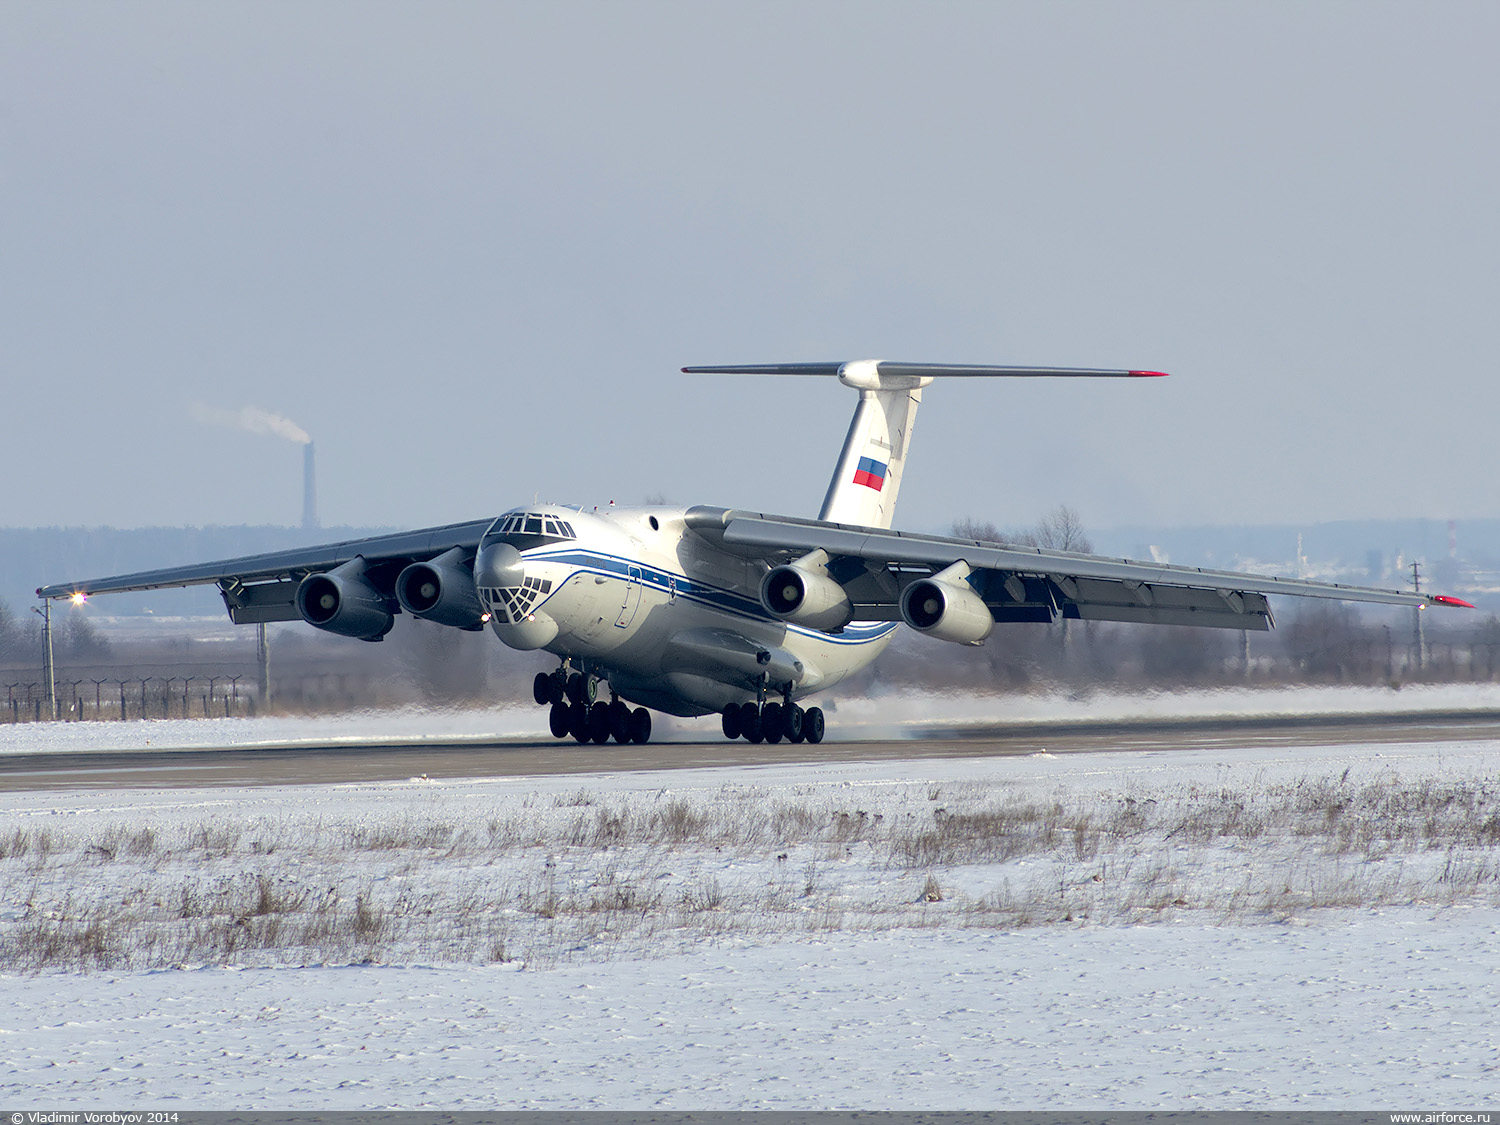 http://www.airforce.ru/content/attachments/59307-v_vorobyov_il-76td_rf-76325_1500.jpg